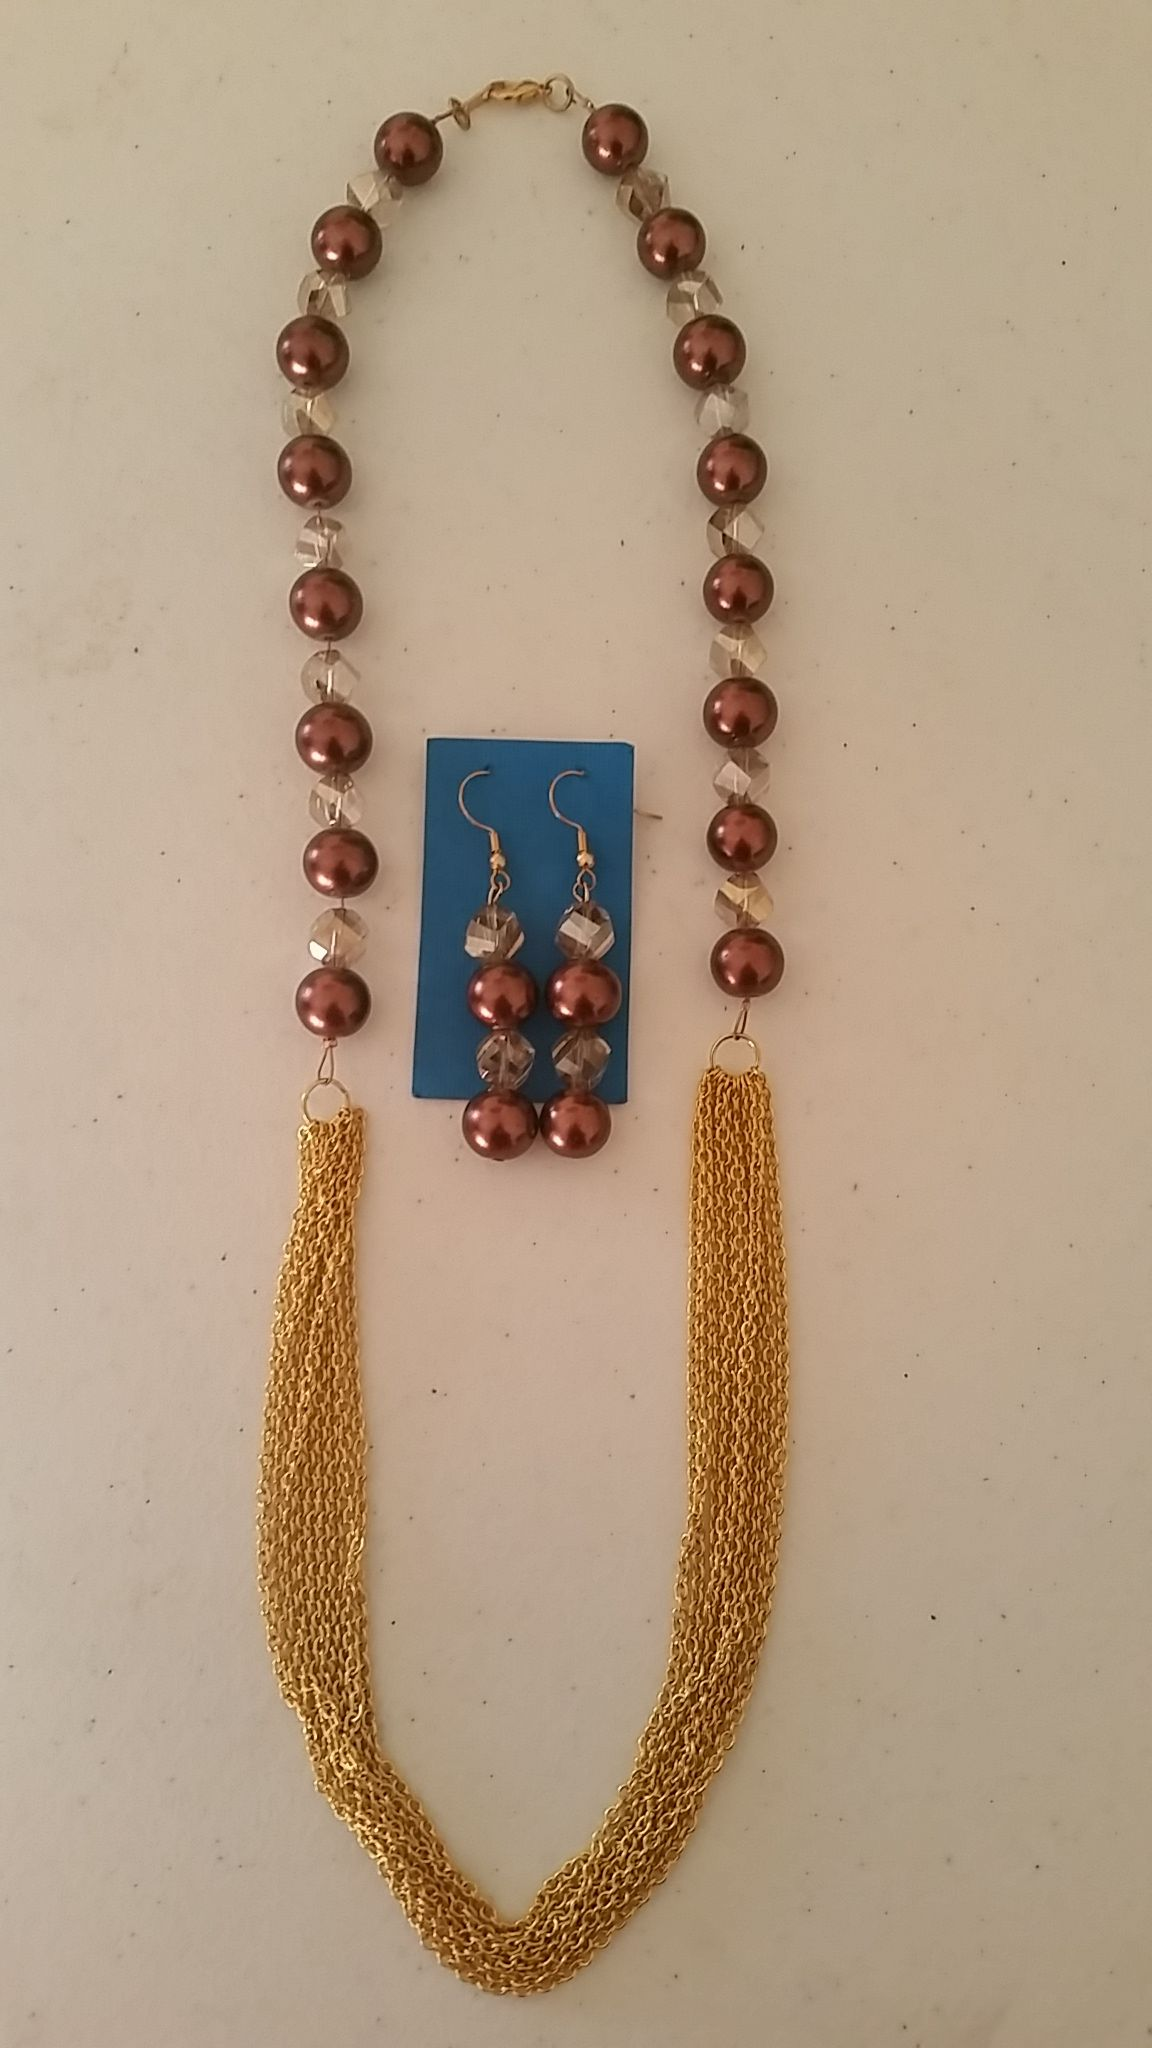 Brown Pearls and golden chain necklace with matching earrings